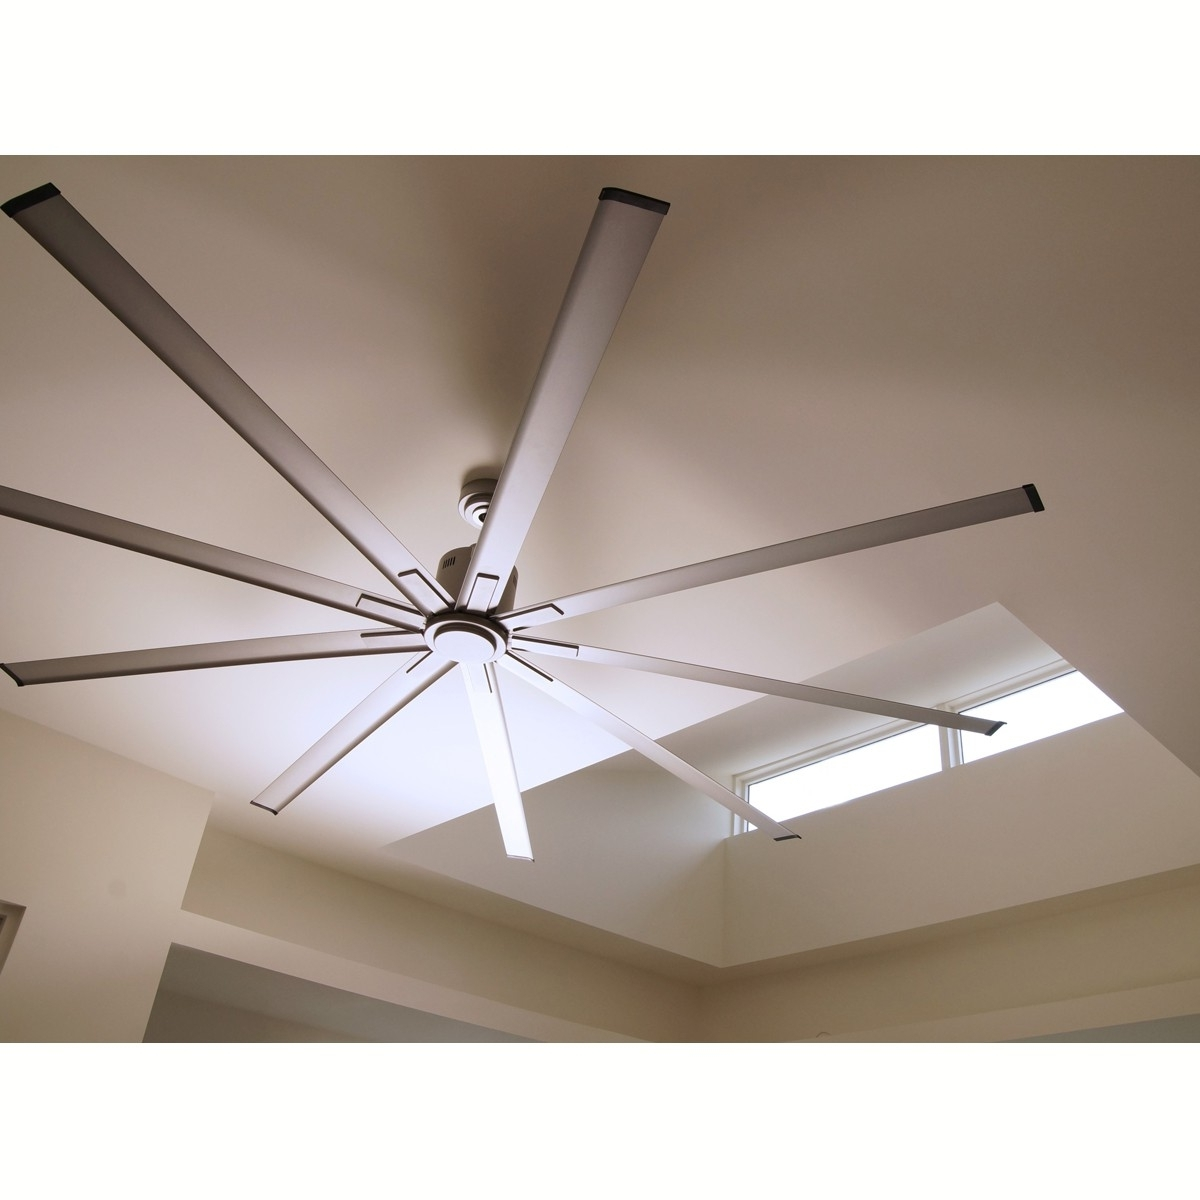 20 72 Ceiling Fan, 72 In 8 Blade Brushed Nickel Led Ceiling Fan With In Well Known 72 Inch Outdoor Ceiling Fans (View 10 of 20)